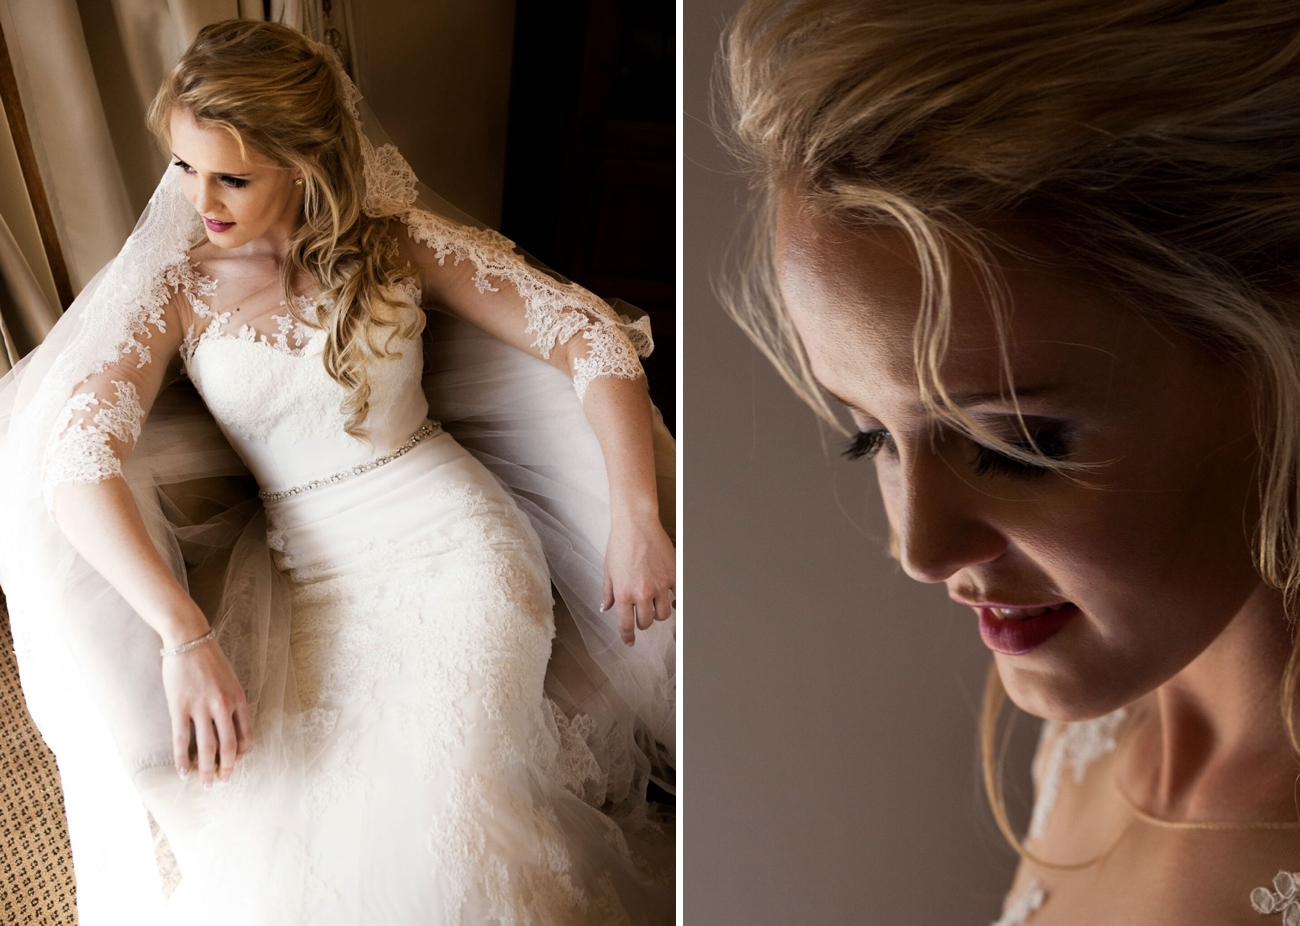 Elegant Superhero Wedding | Image: Daniel West